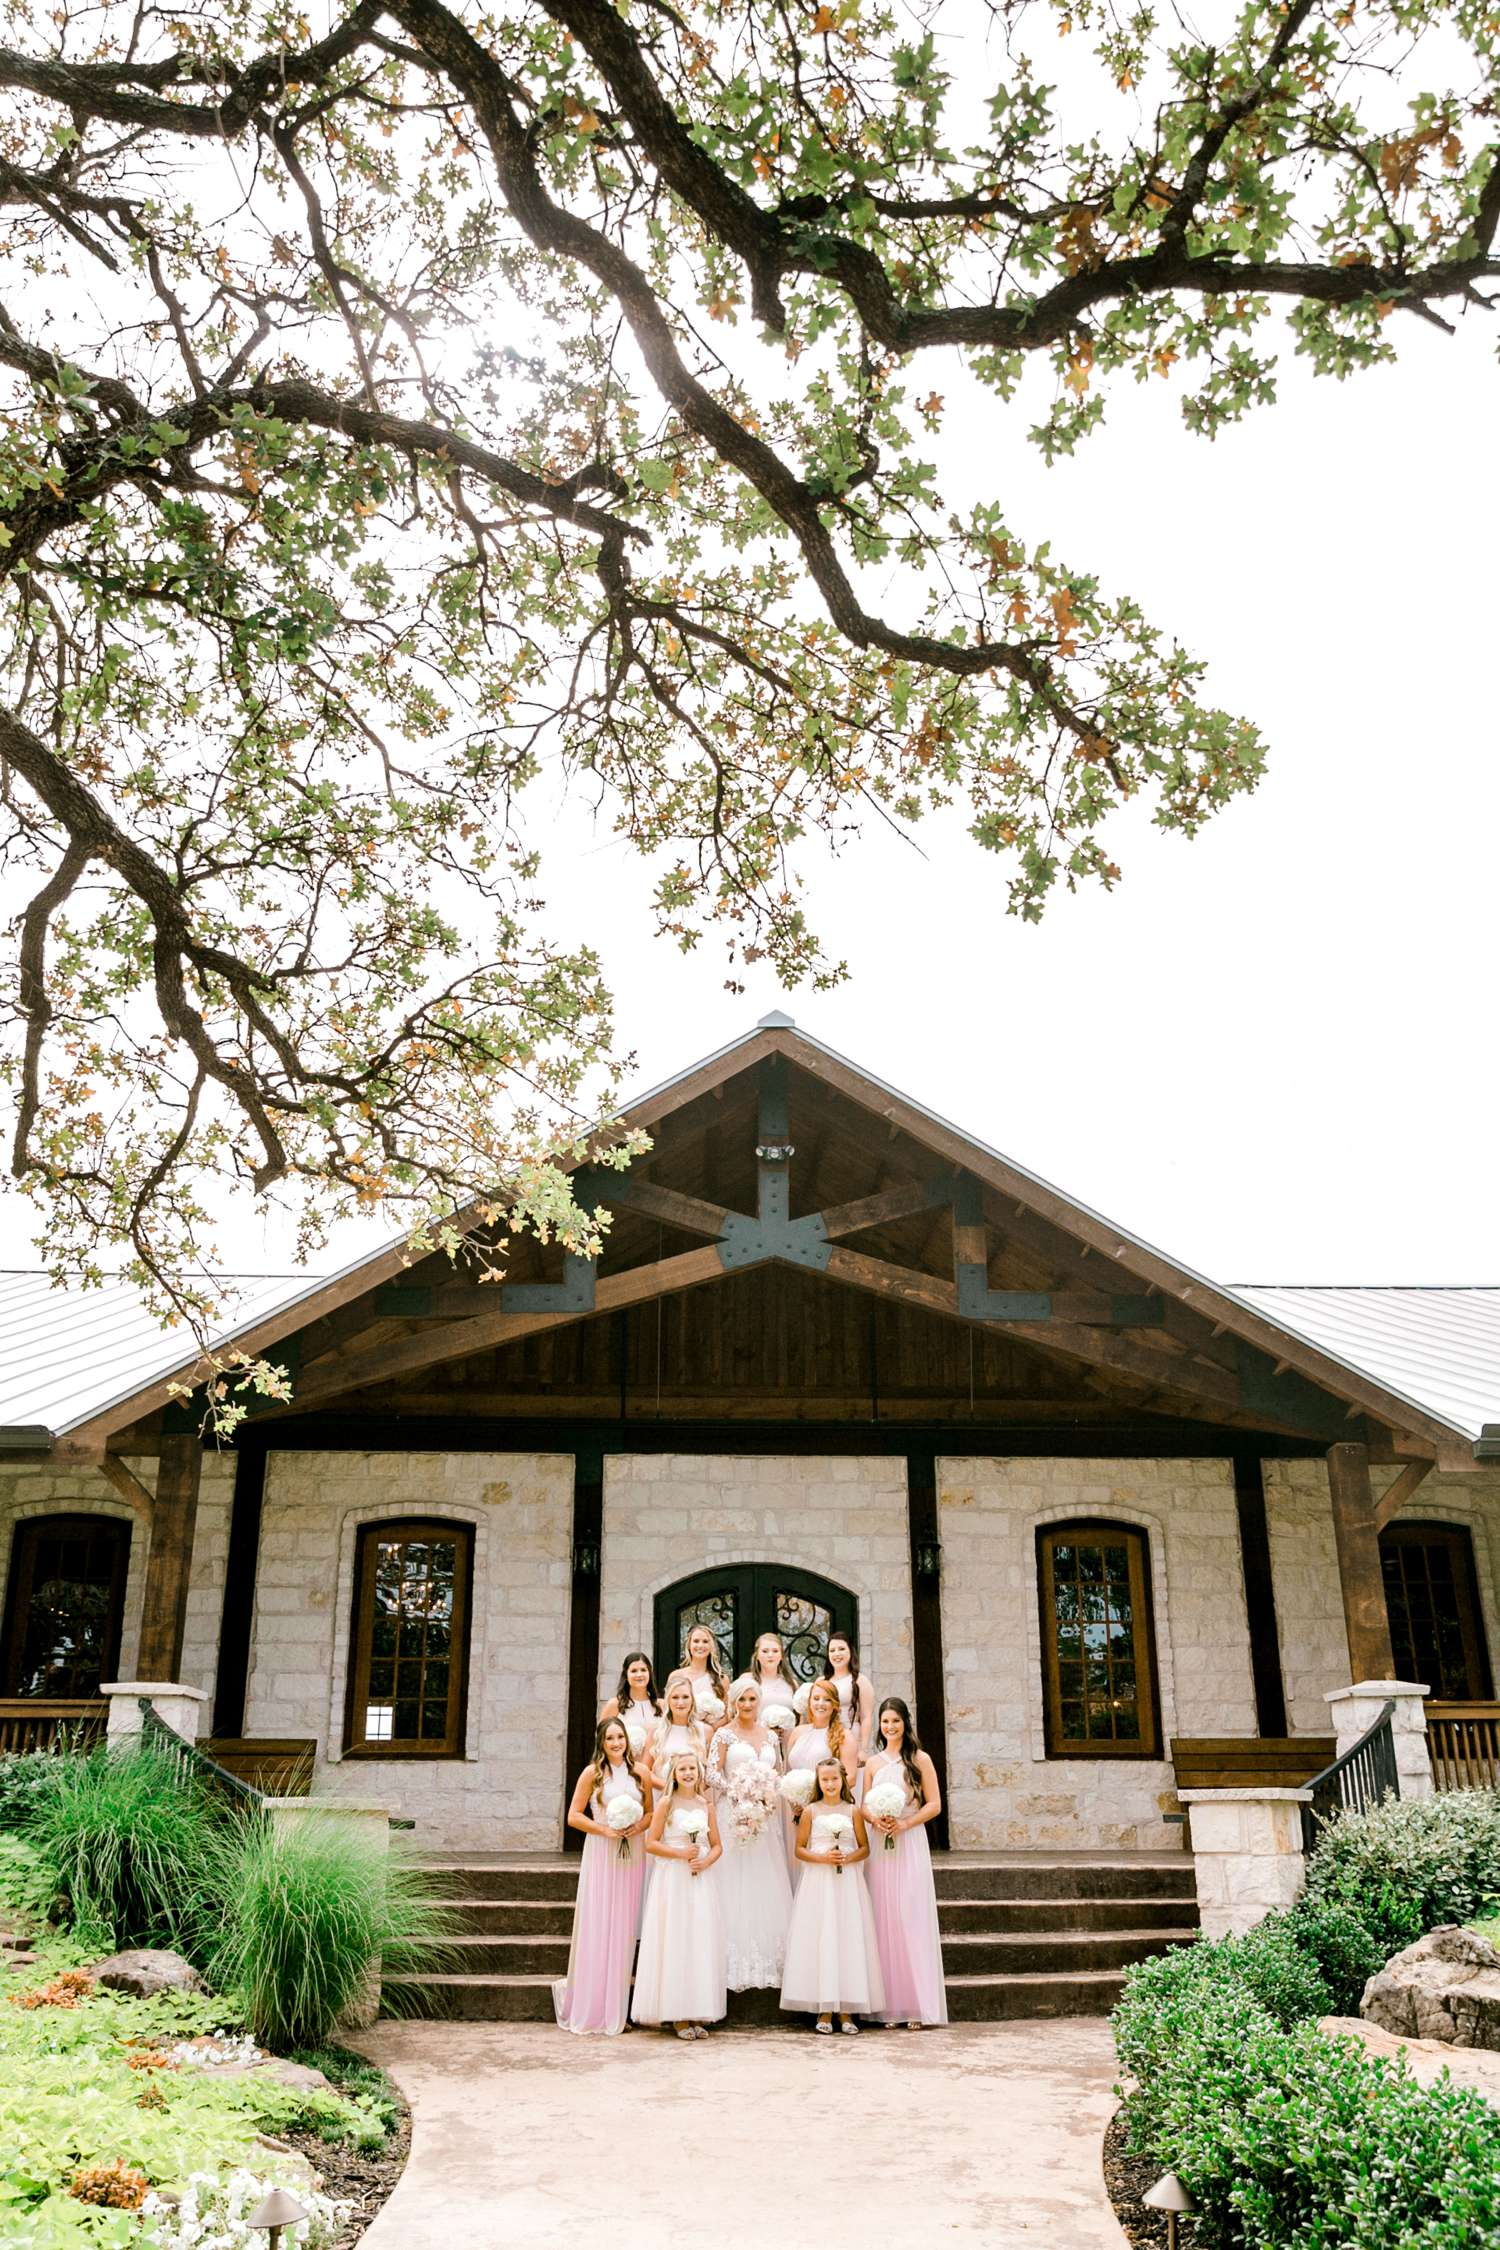 JESSICA+LYLE+NEEL+THE_SPRINGS_EVENTS_WEDDING_OKLAHOMA_ALLEEJ_PHOTOGRAPHER_0016.jpg